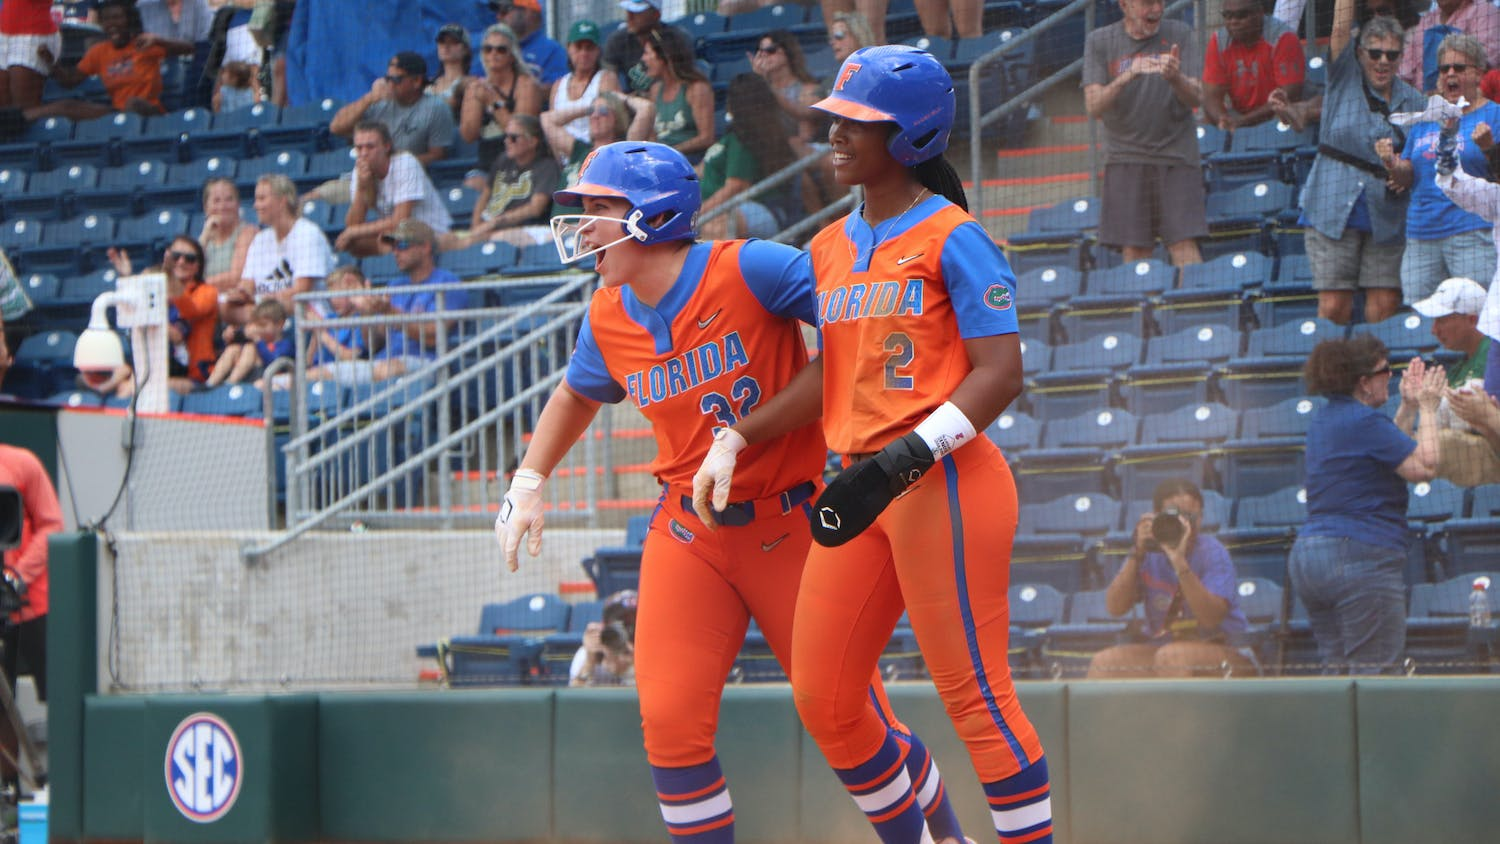 Florida's Kendyl Lindaman and Cheyenne Lindsey celebrate against South Florida on May 21. Lindaman and Lindsey combined for three hits and three RBIs in a 10-0 victory over South Alabama Saturday.